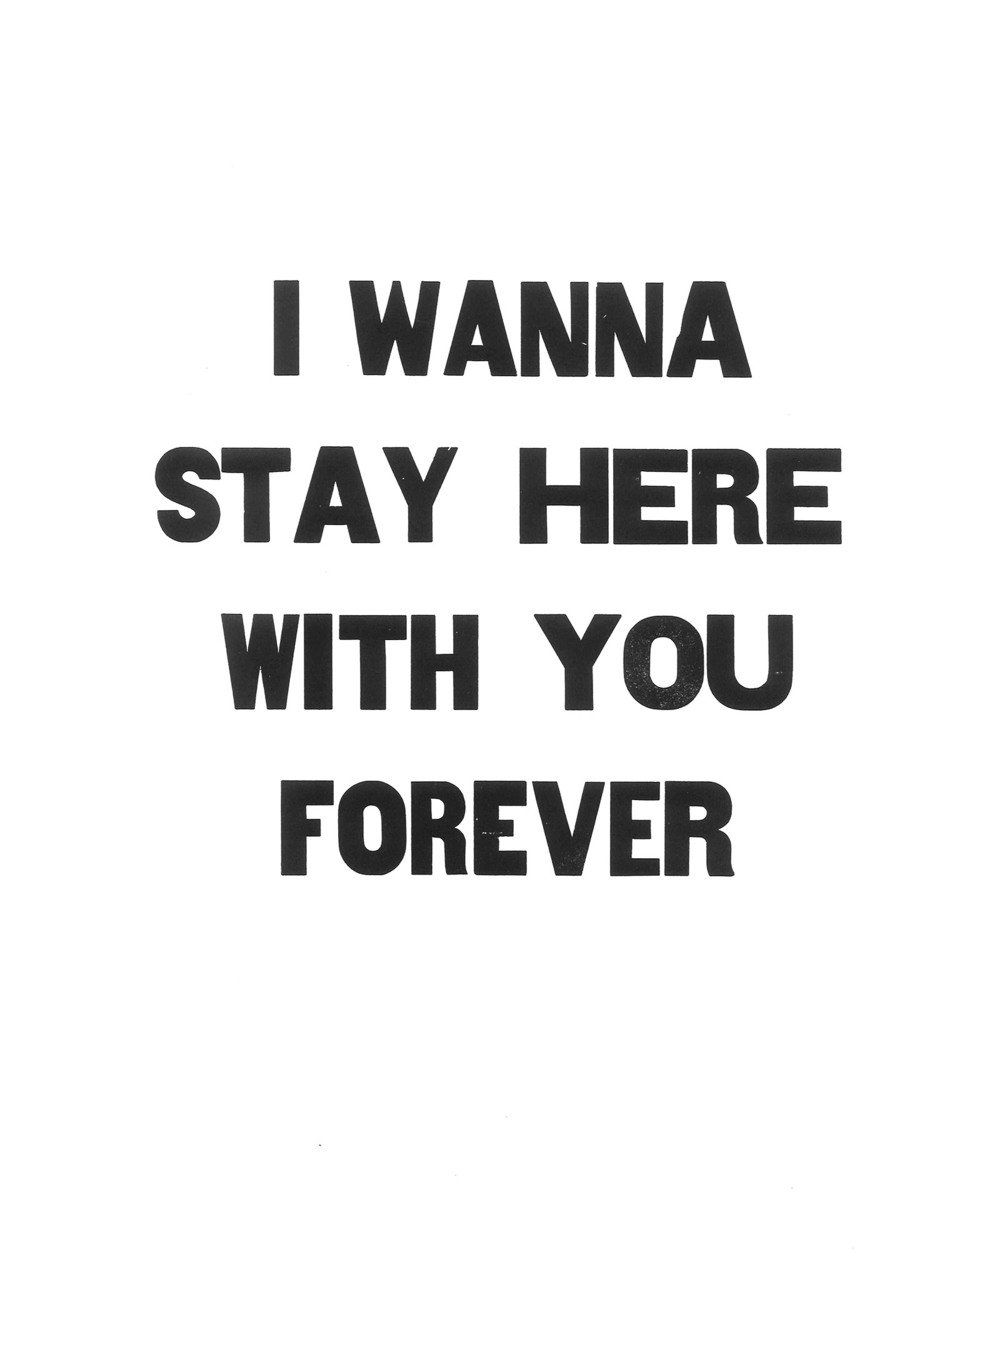 I wanna stay here with you forever